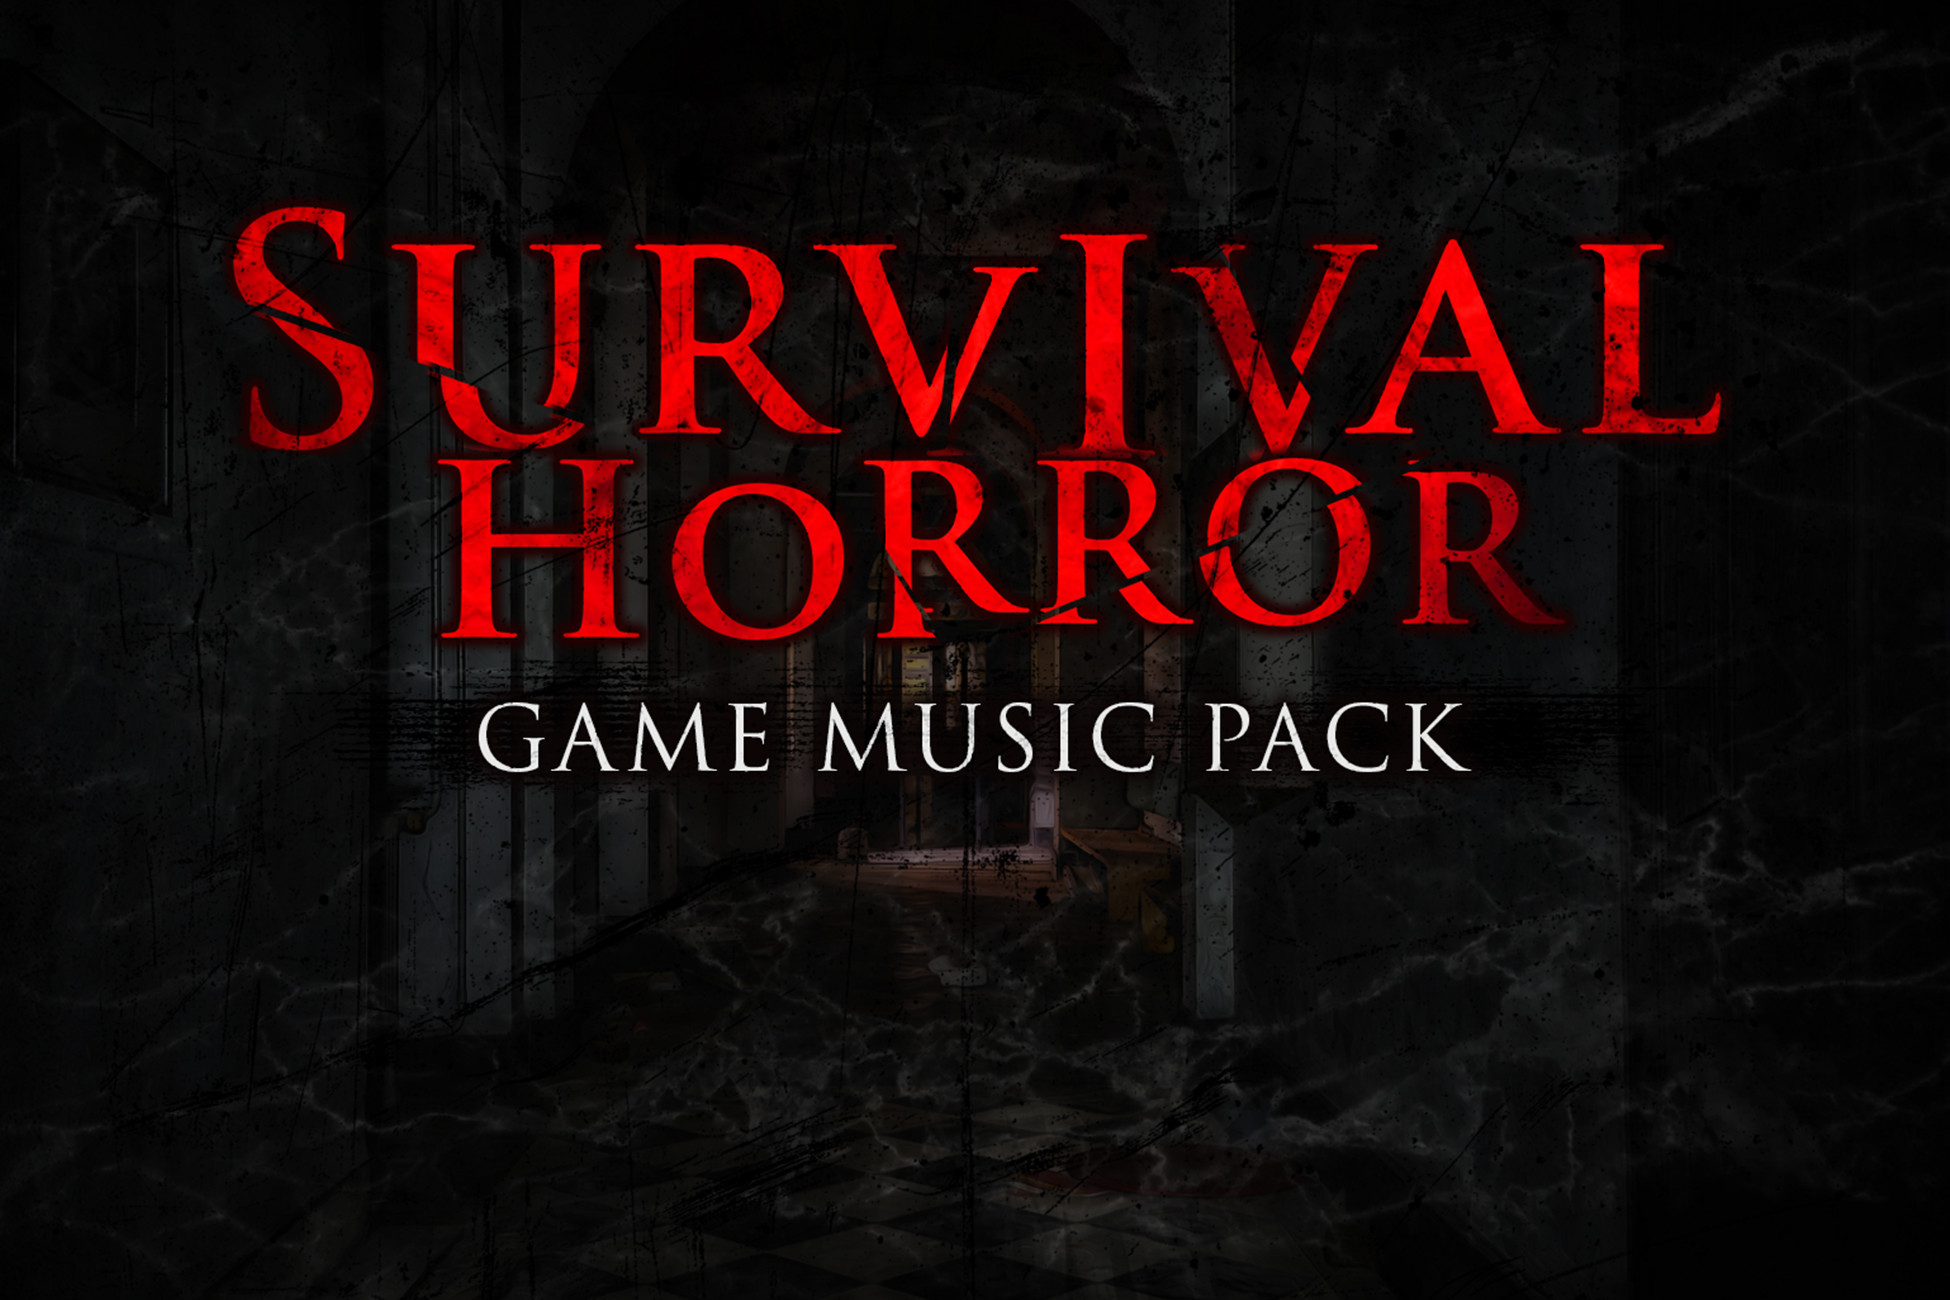 Survival Horror Game Music Pack